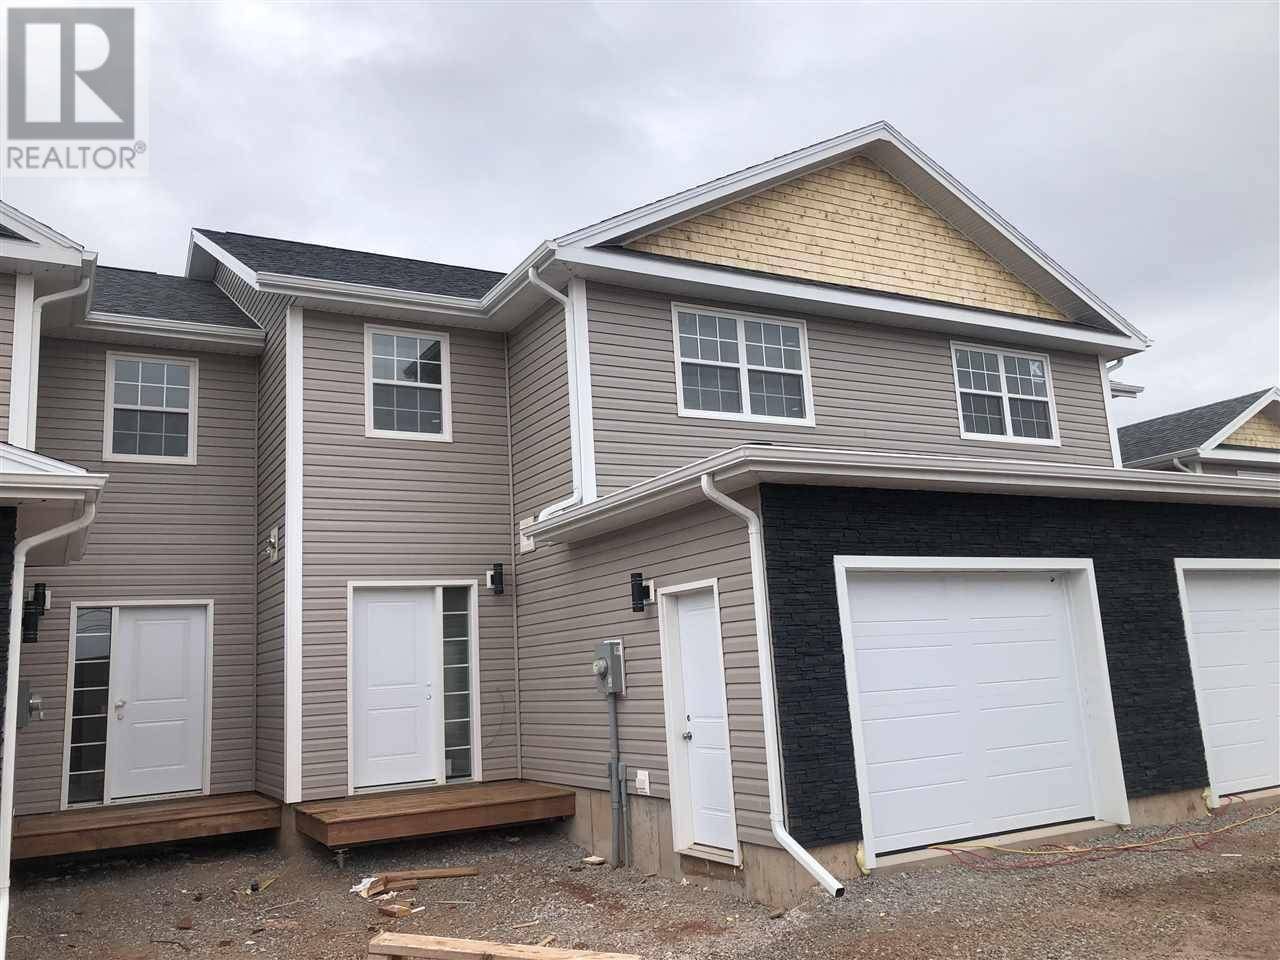 Townhouse for sale at 74 Macwilliams Rd Unit A East Royalty Prince Edward Island - MLS: 201916410